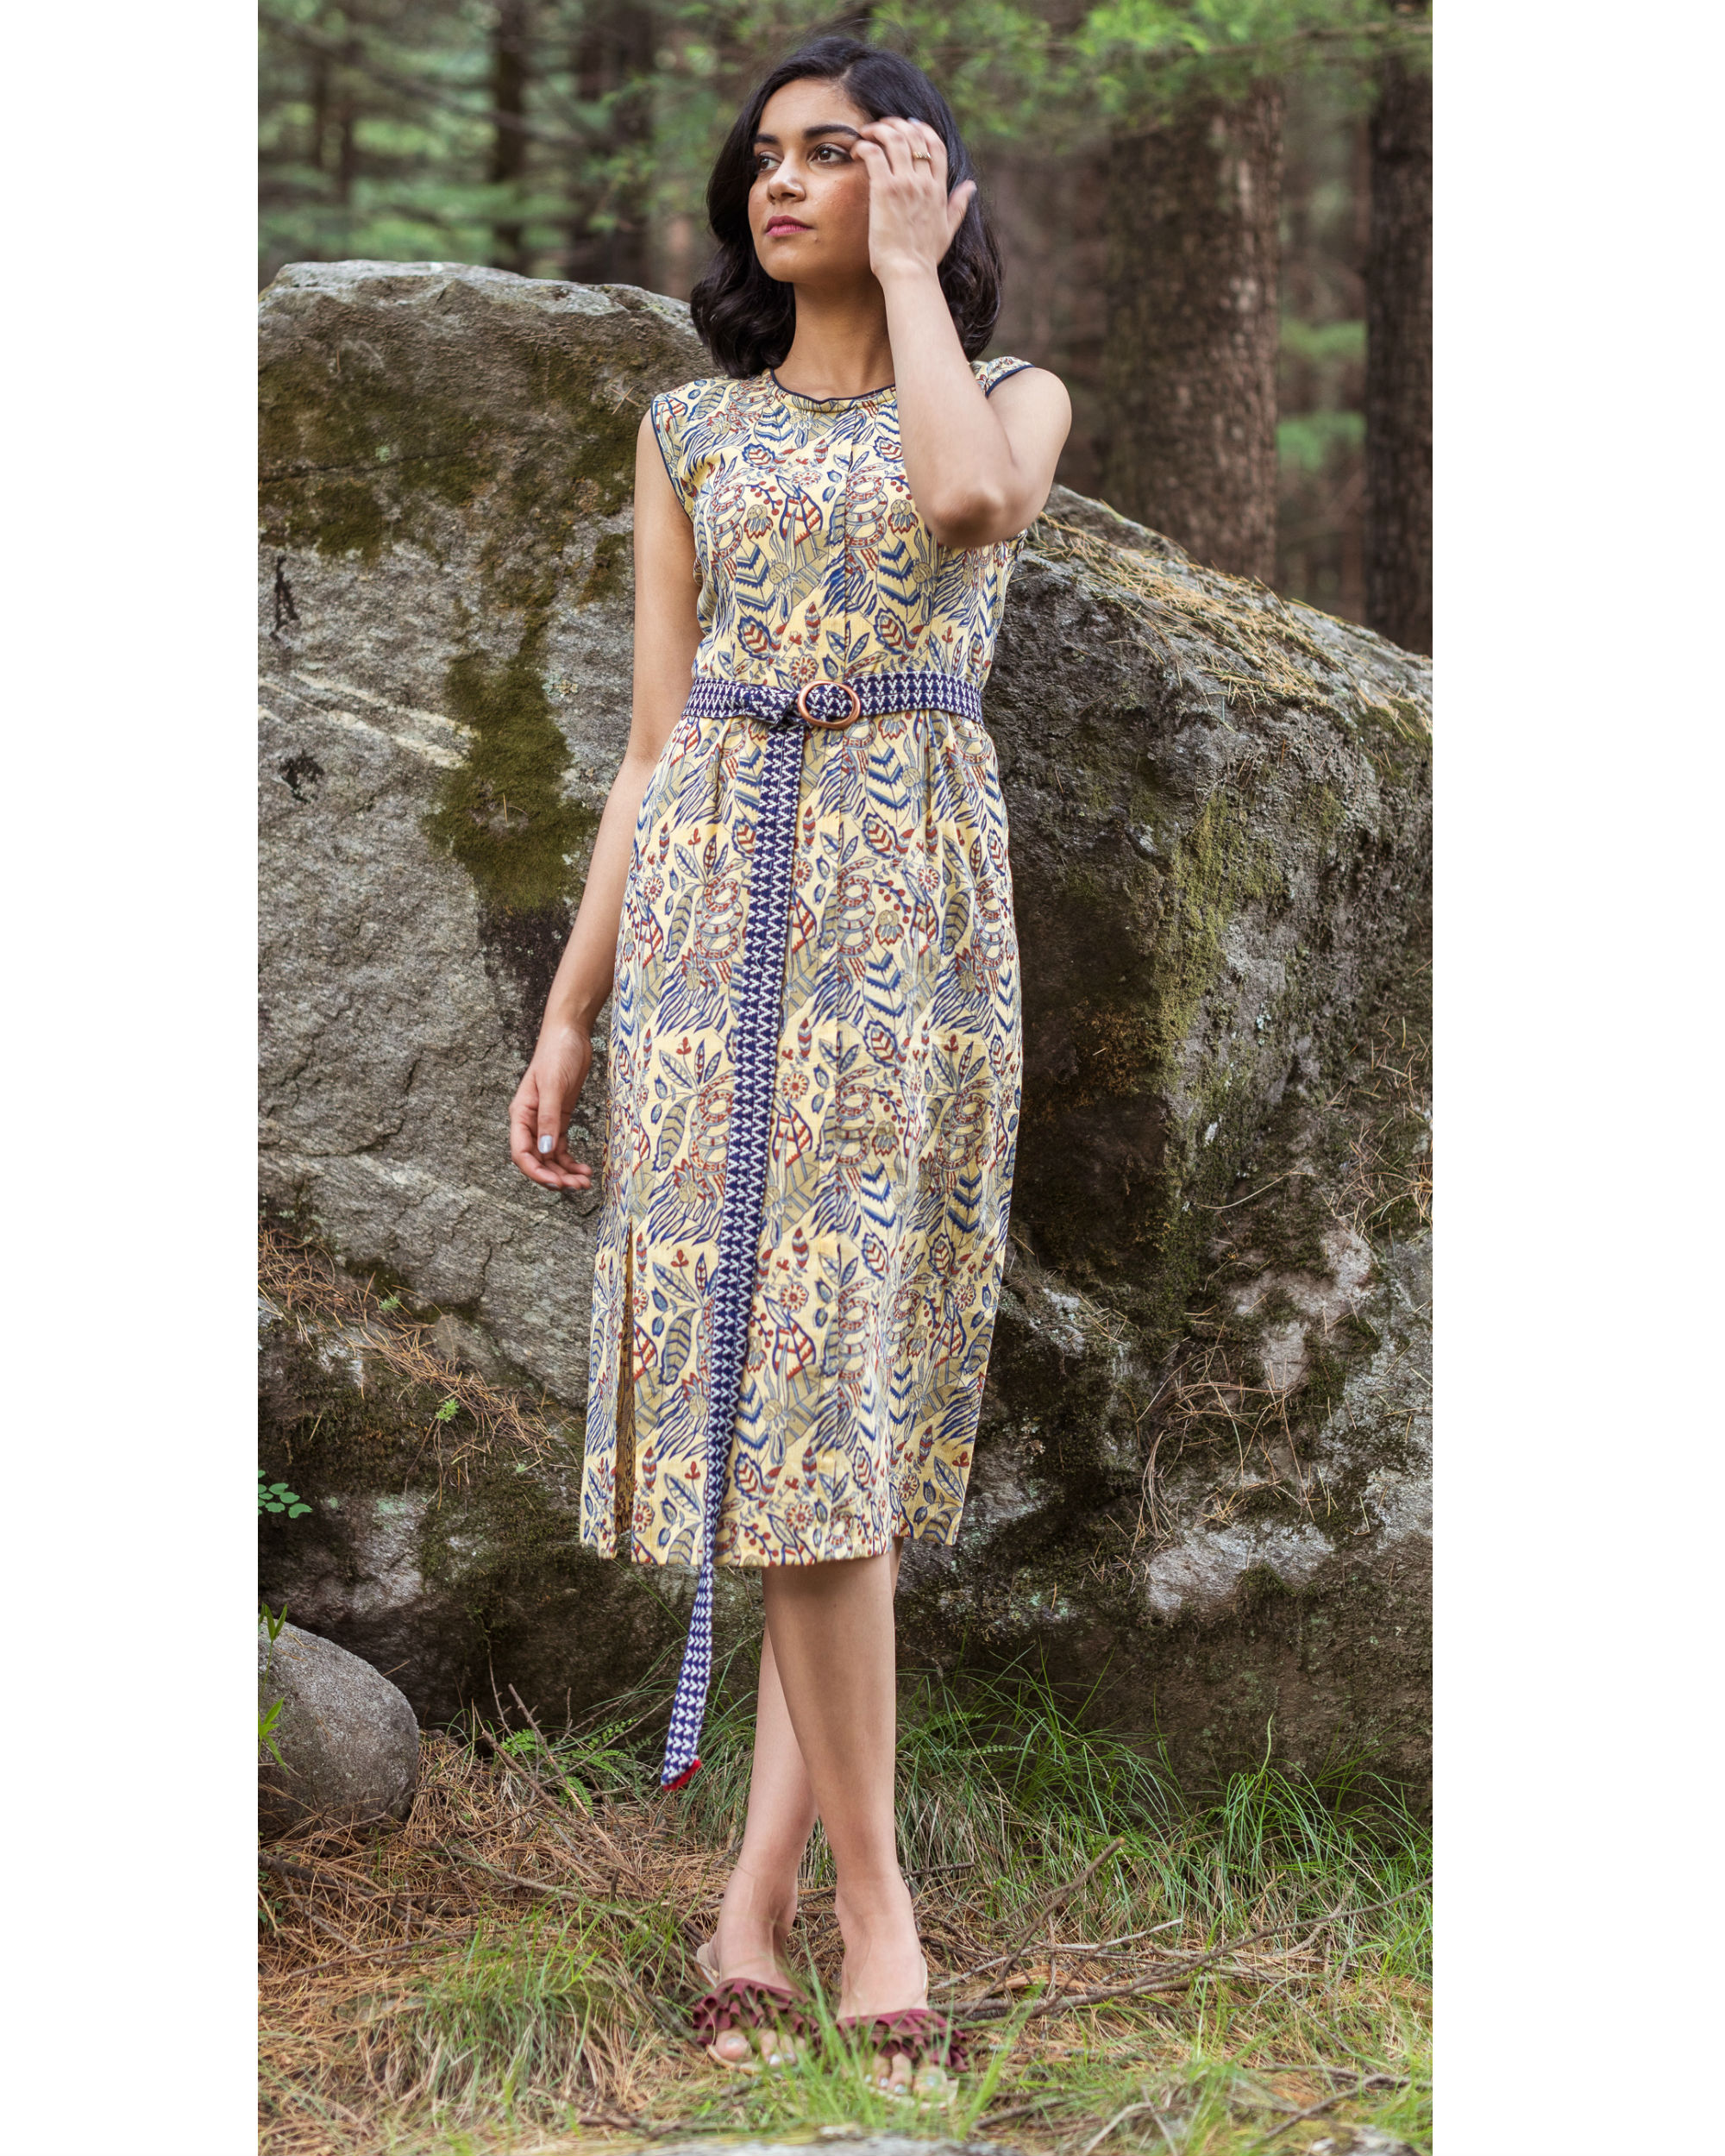 Rainforest sheath dress